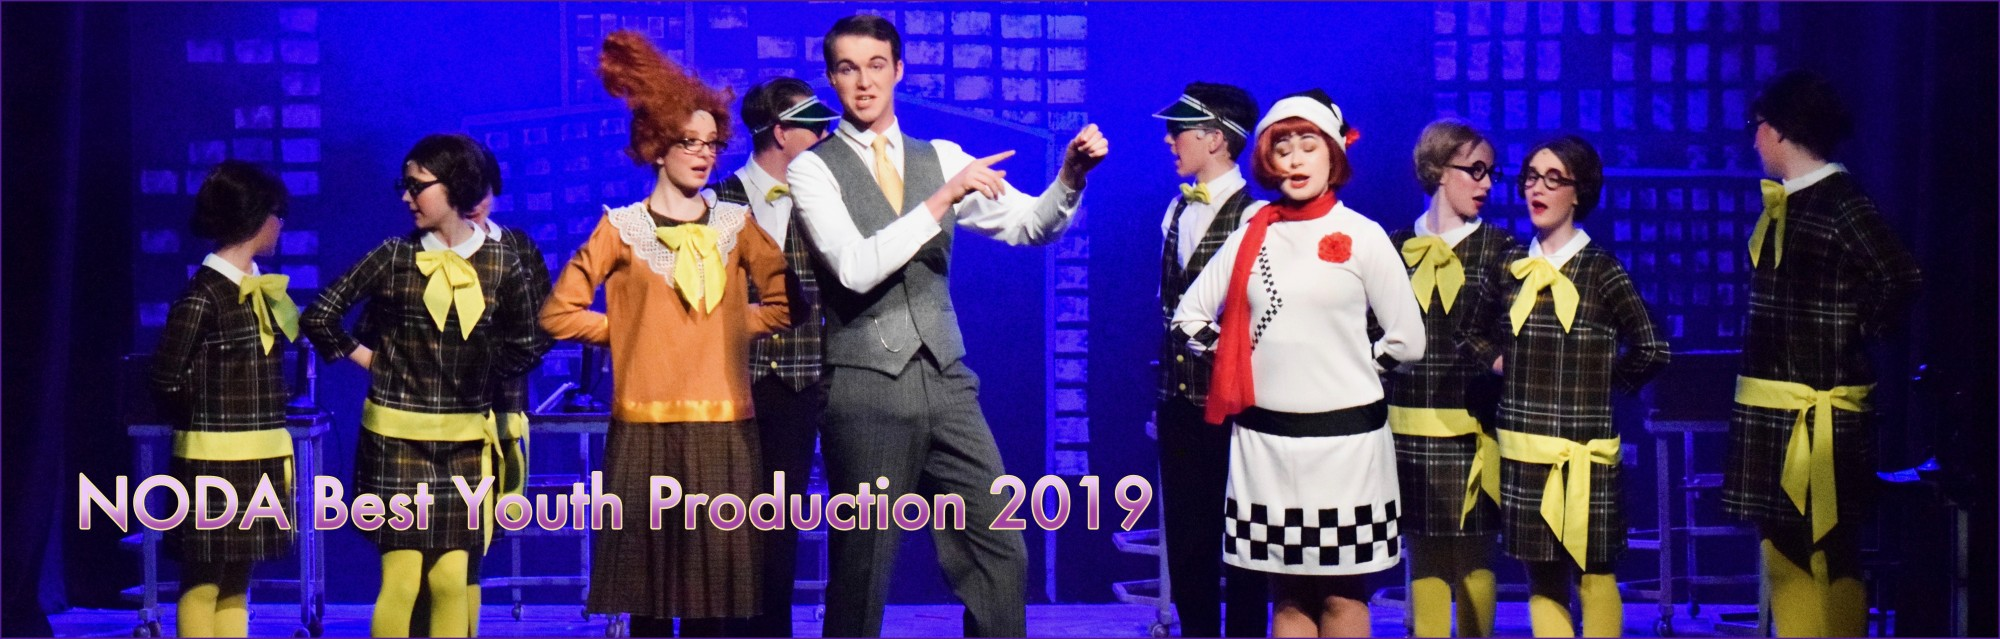 Thoroughly Modern Millie named NODA Best Youth Production